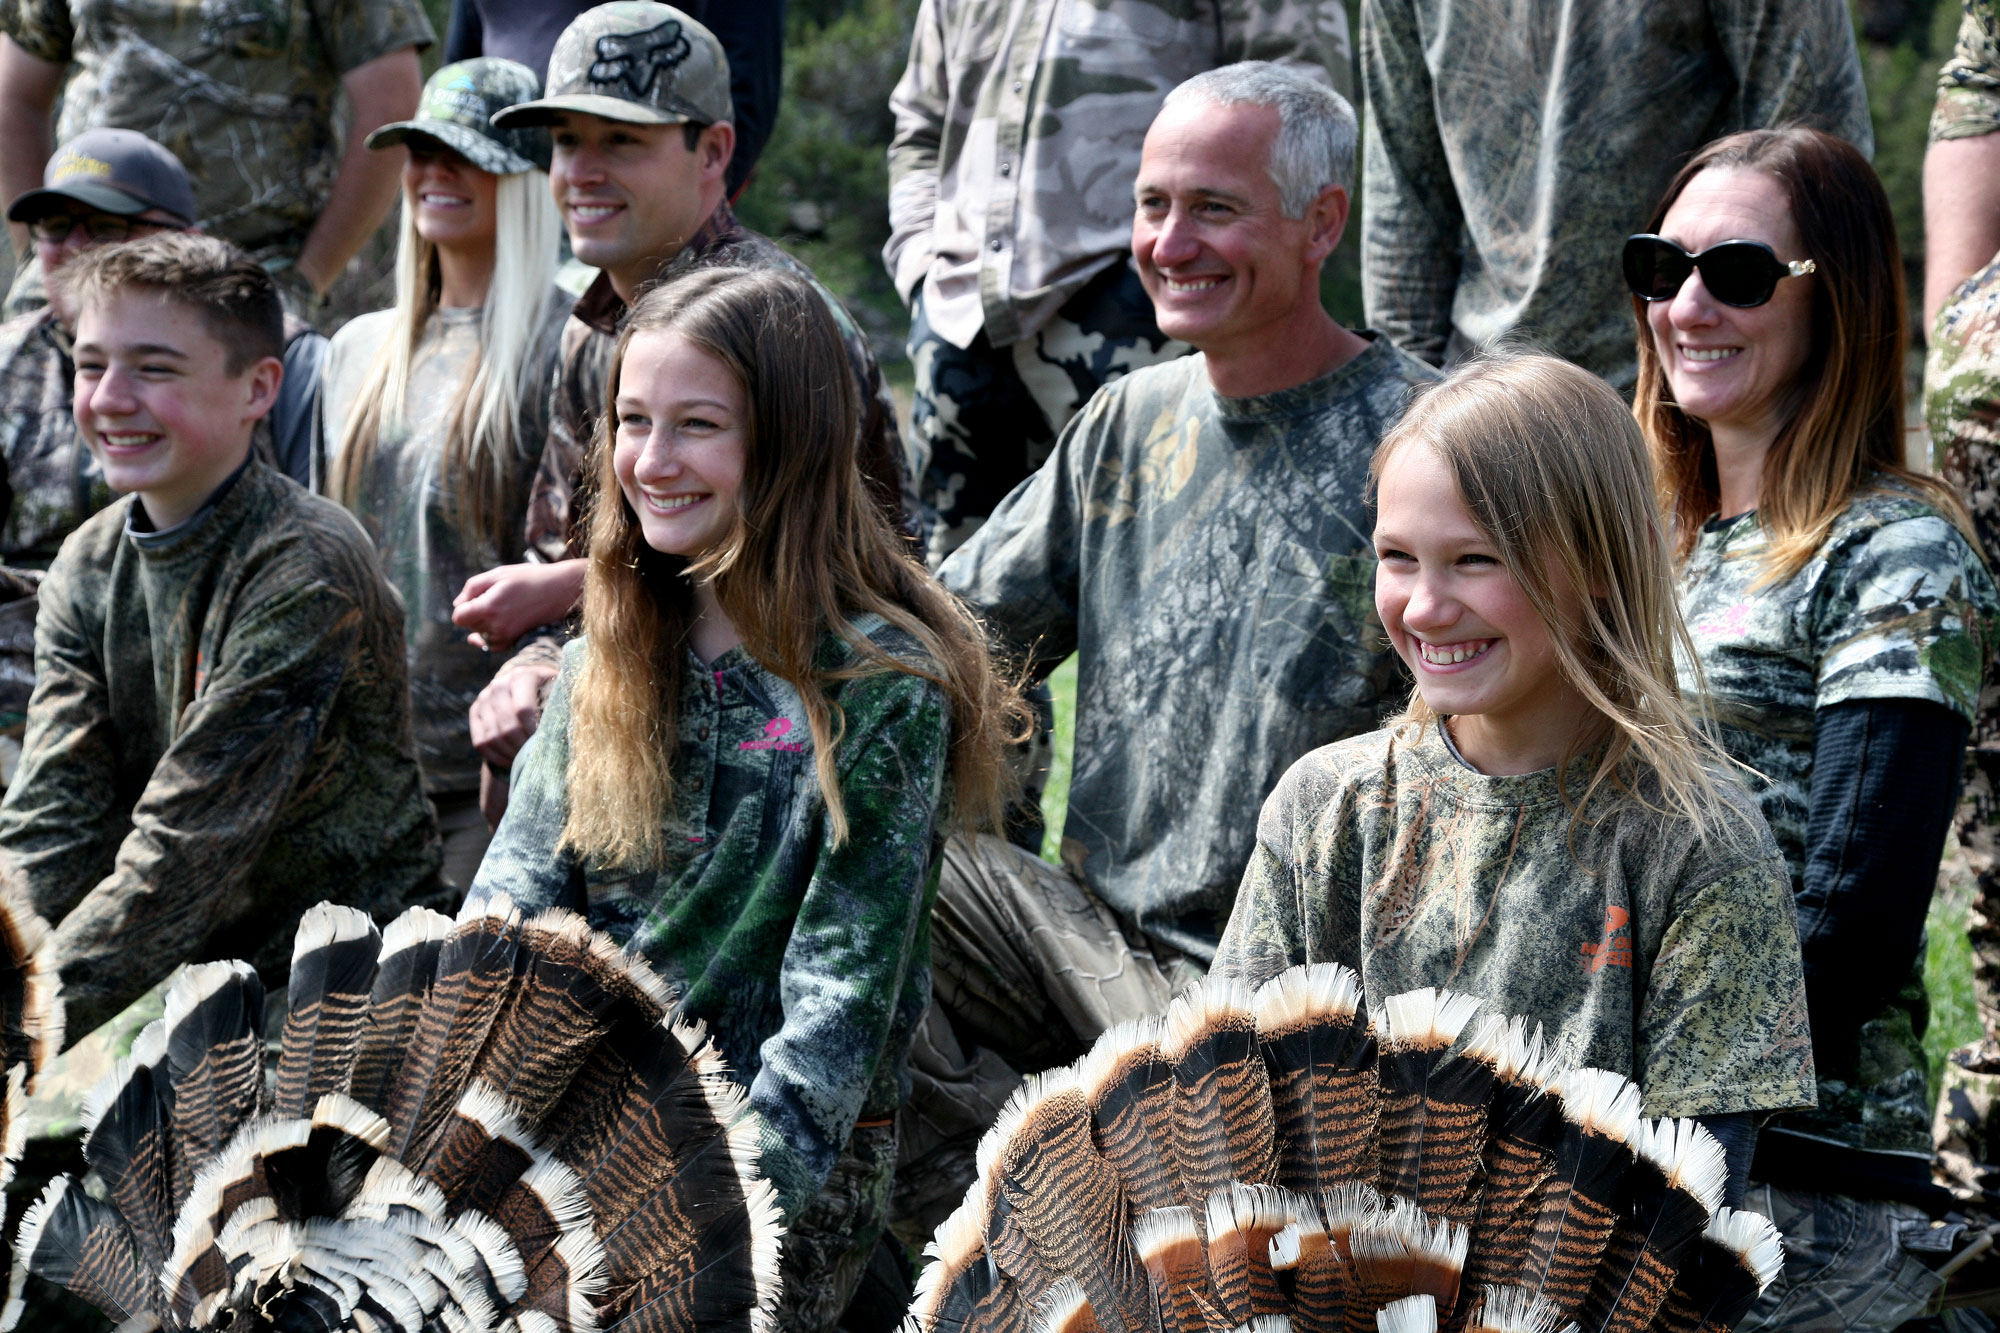 <p>This year was a bountiful one for the annual Colorado Parks and Wildlife Youth Hunter Outreach Program turkey hunt, with six out of seven youngsters taking a turkey. From left, Hunter Snow, 14, and sisters Savannah and Hailey Jones, ages 13 and 11. Behind, from left, are parents Amber and Andy Snow, and John and Jenny Jones.</p>